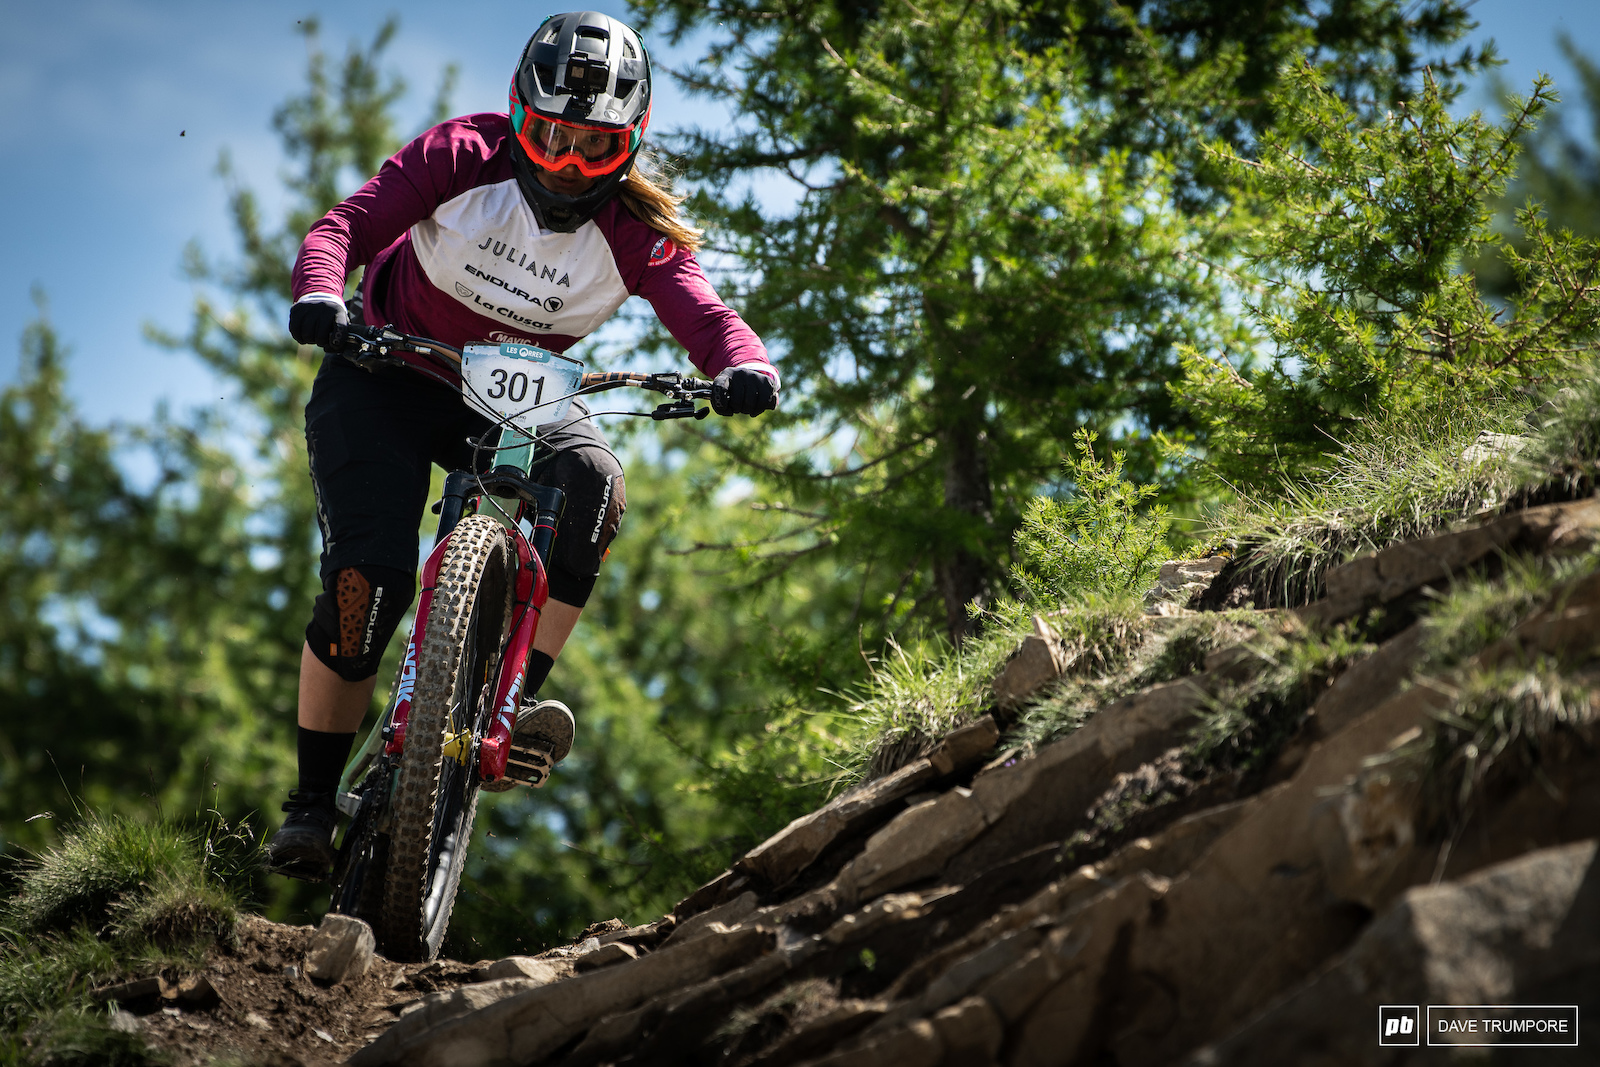 Morgane Charre will be looking to get back on the podium here on French soil.